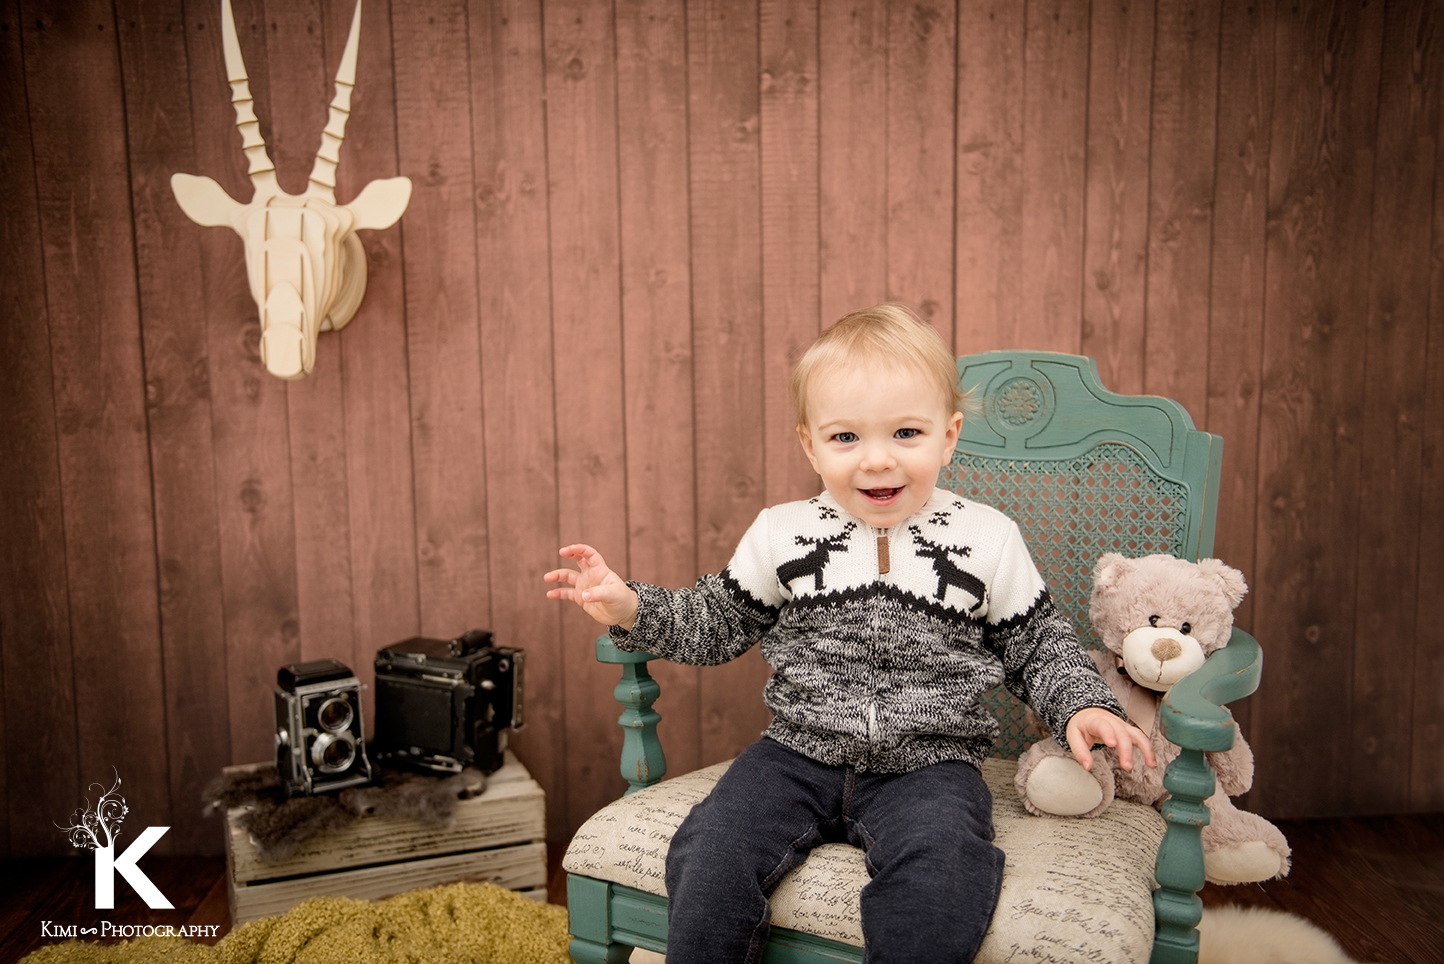 1st-birthday-picture-first-birthday-photo-portland-family-portrait-session-Kimi-Photography-4